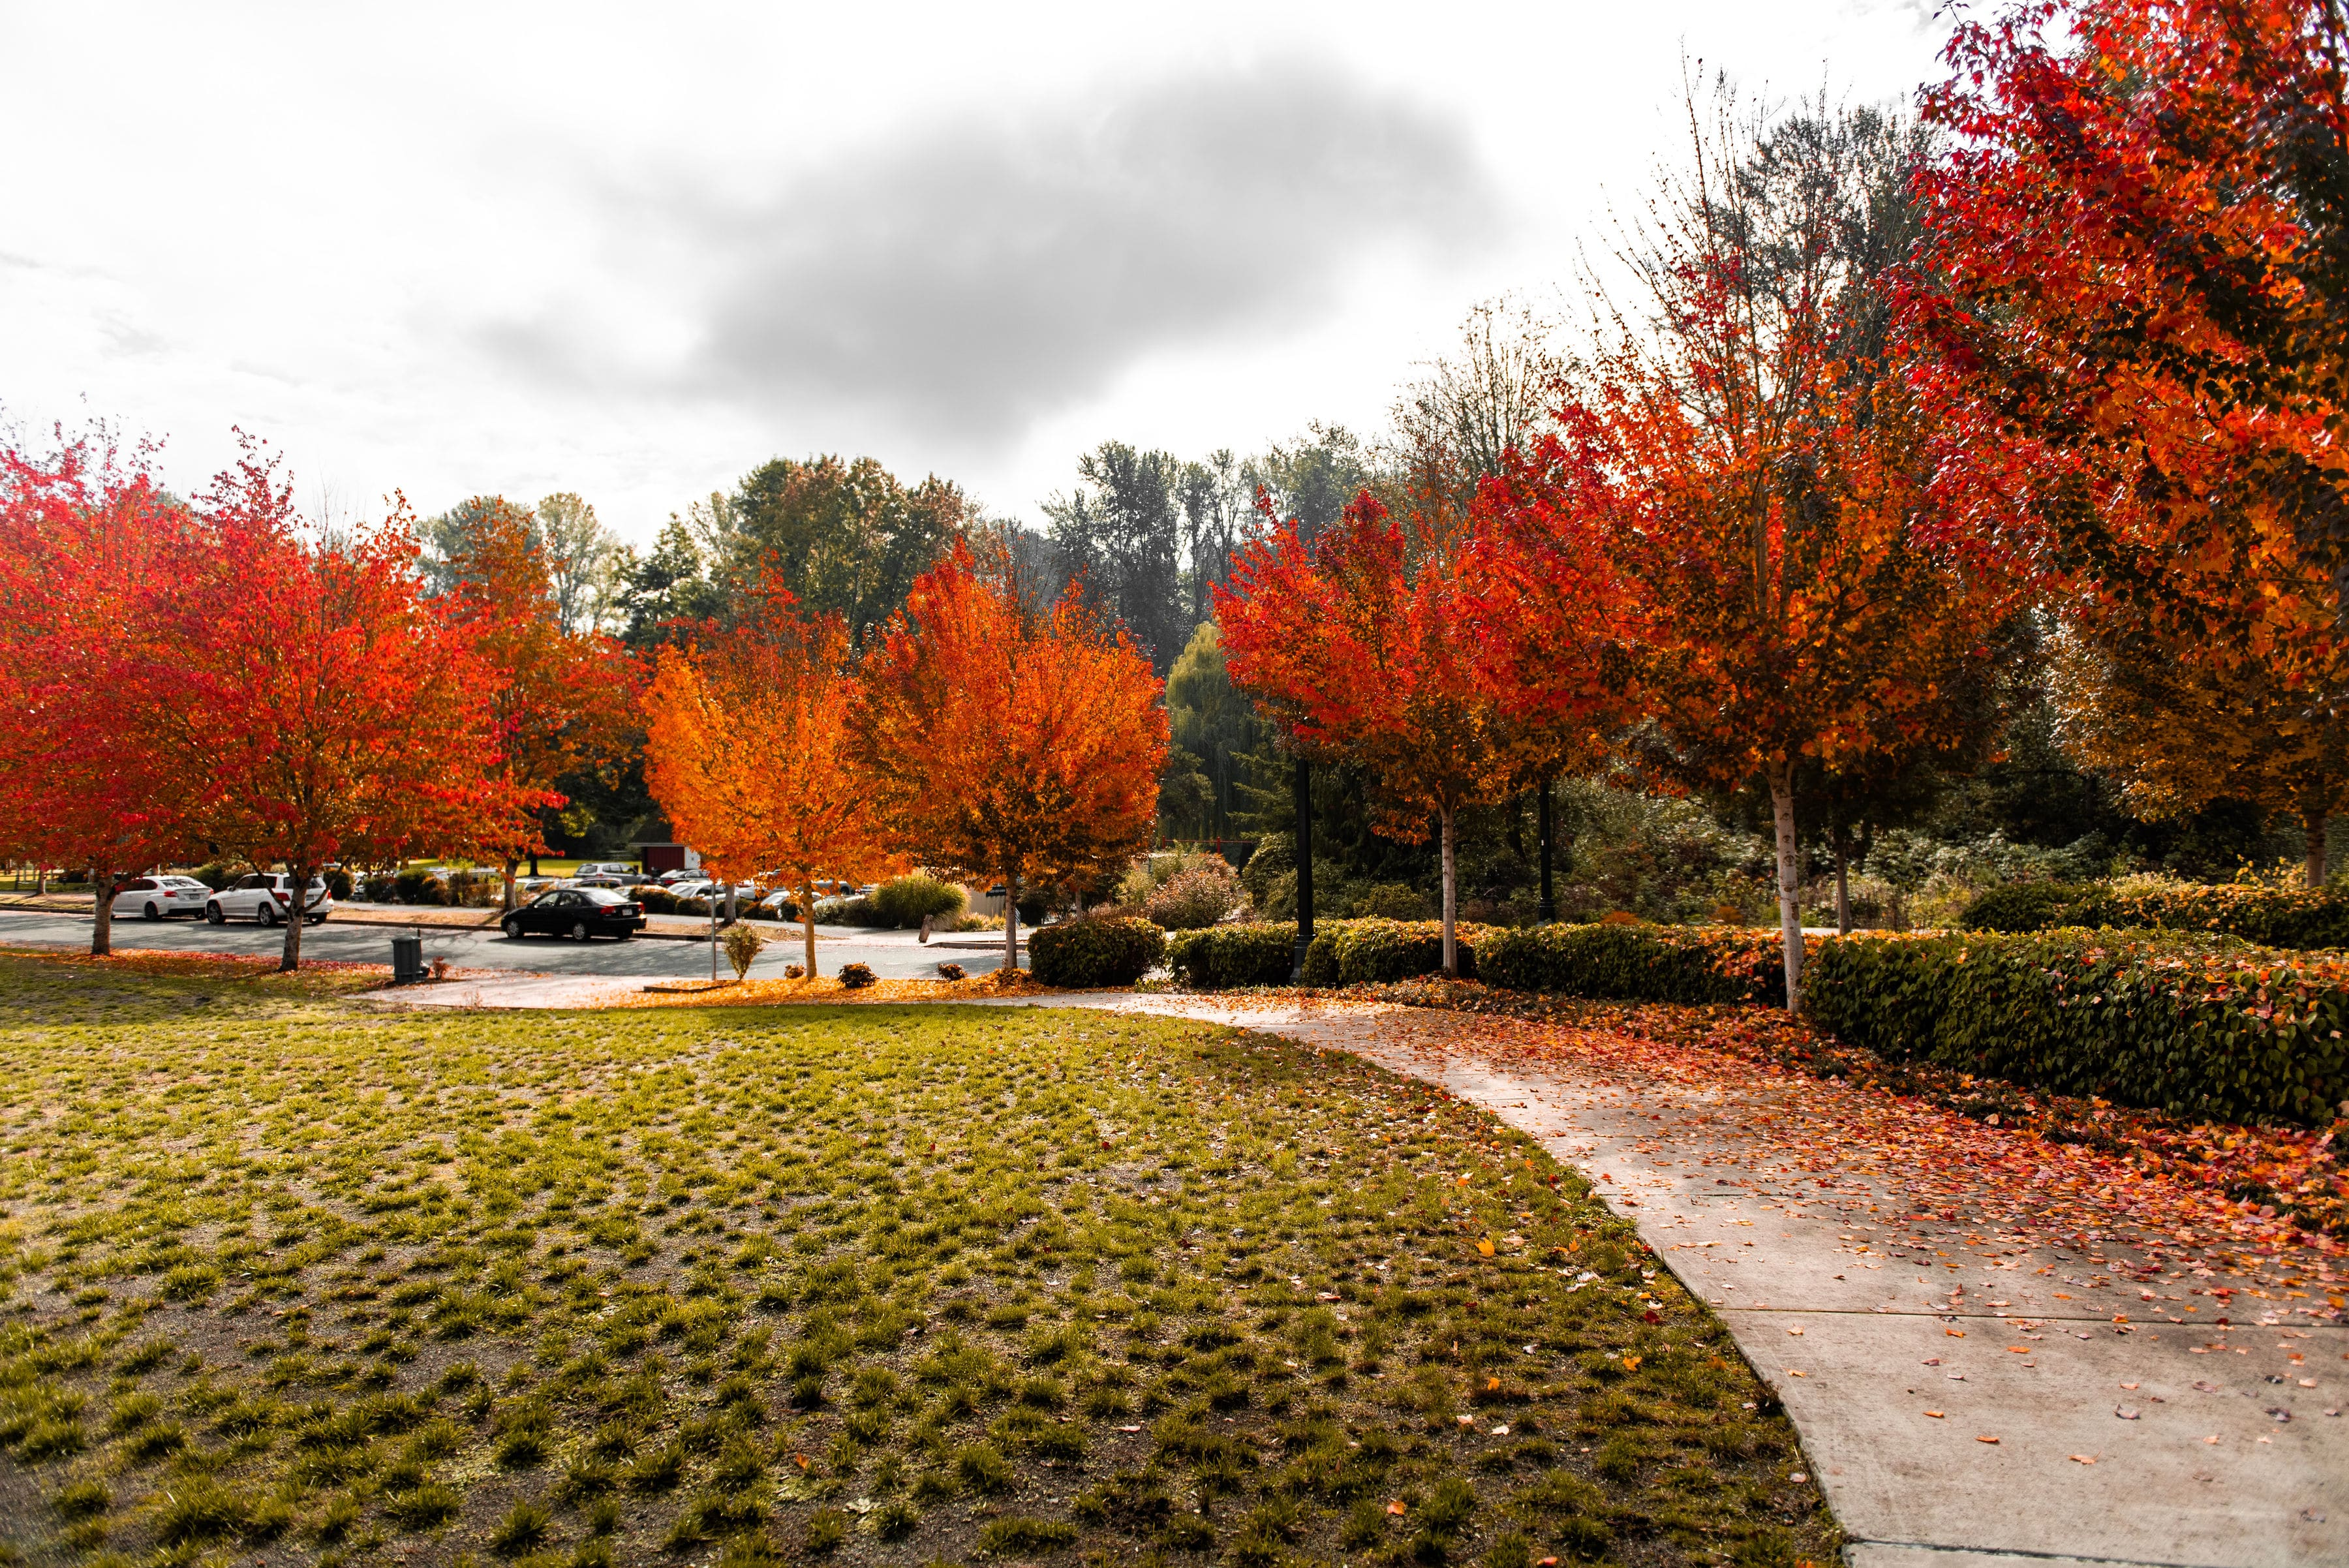 Fall foliage in Bothell.